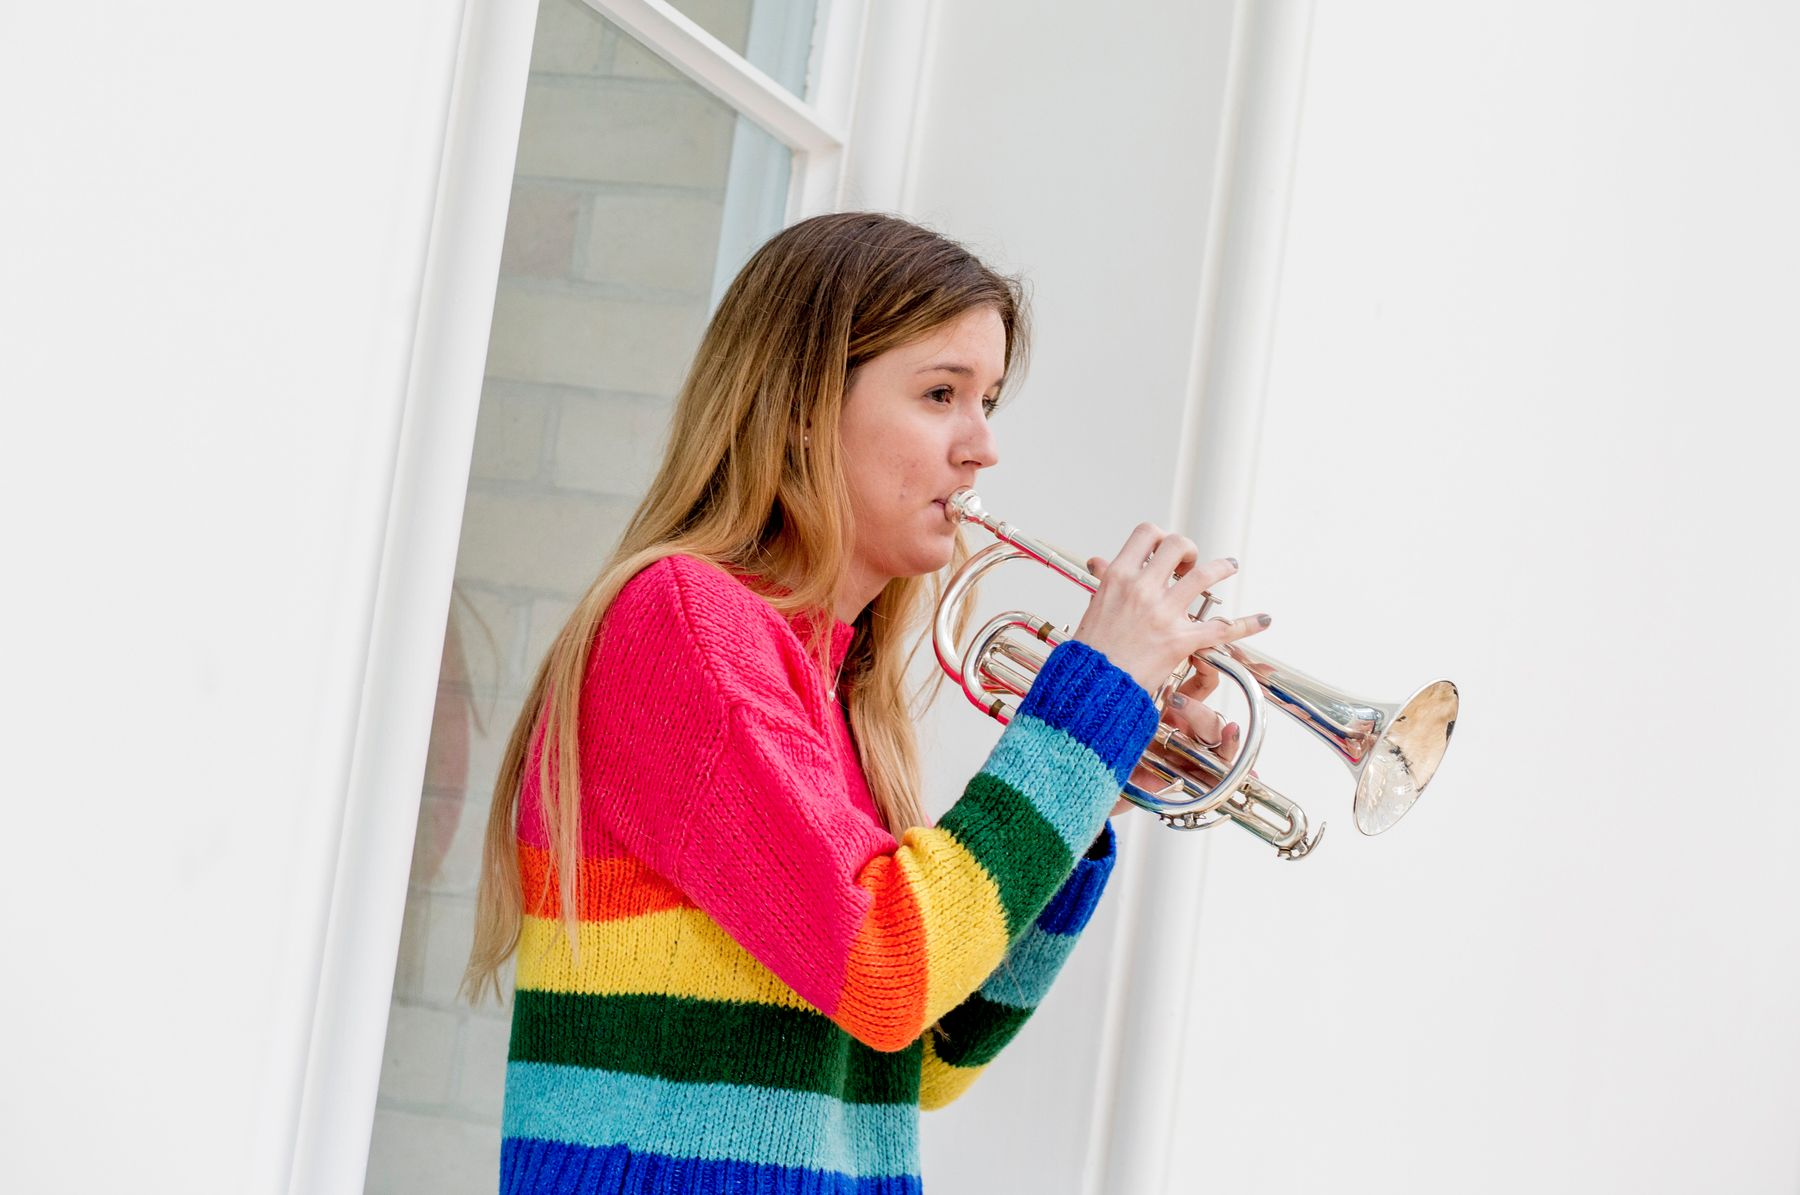 Female student playing trumpet